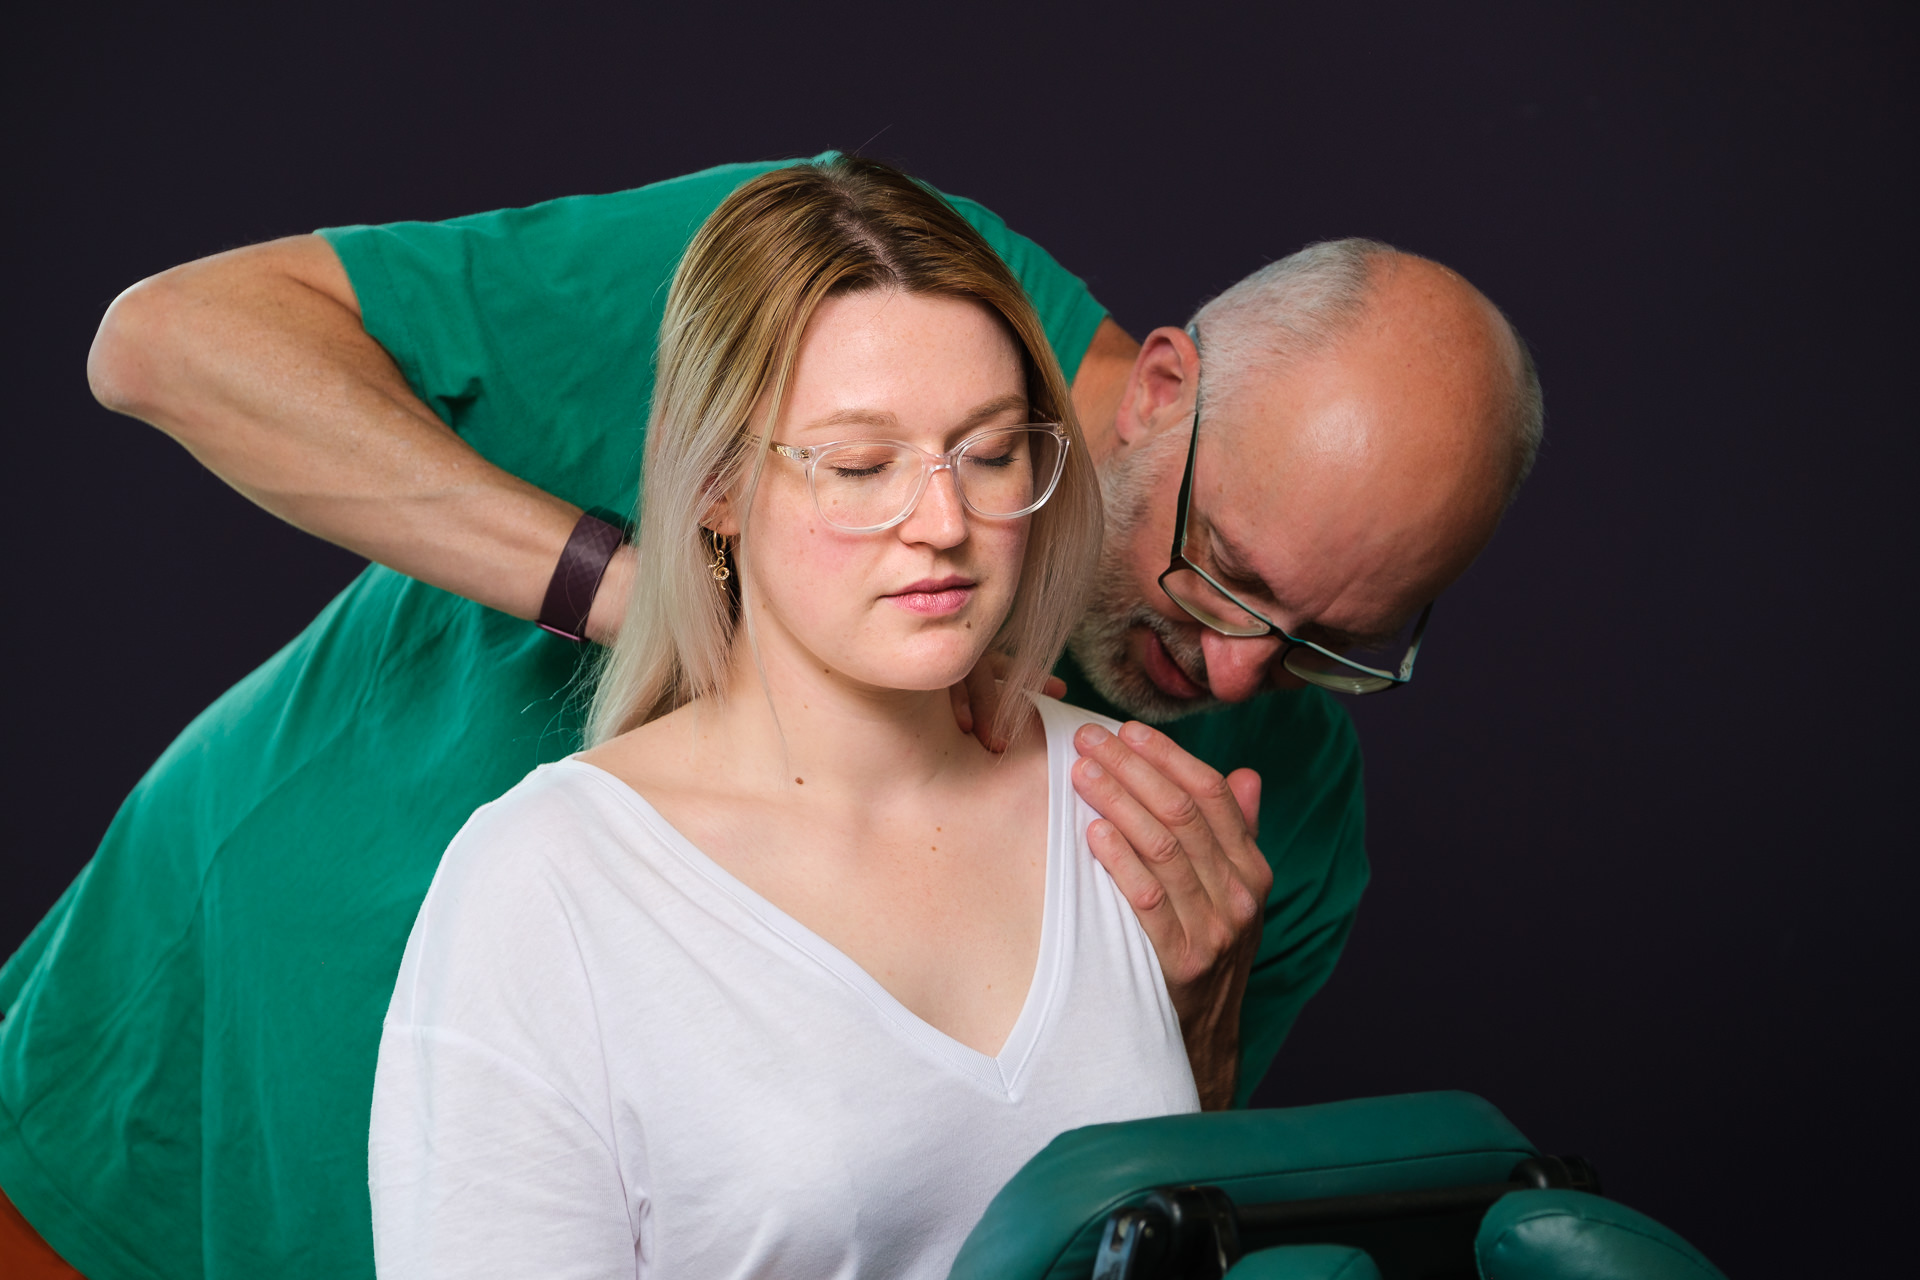 Female business photography of young woman having a relaxing neck massage